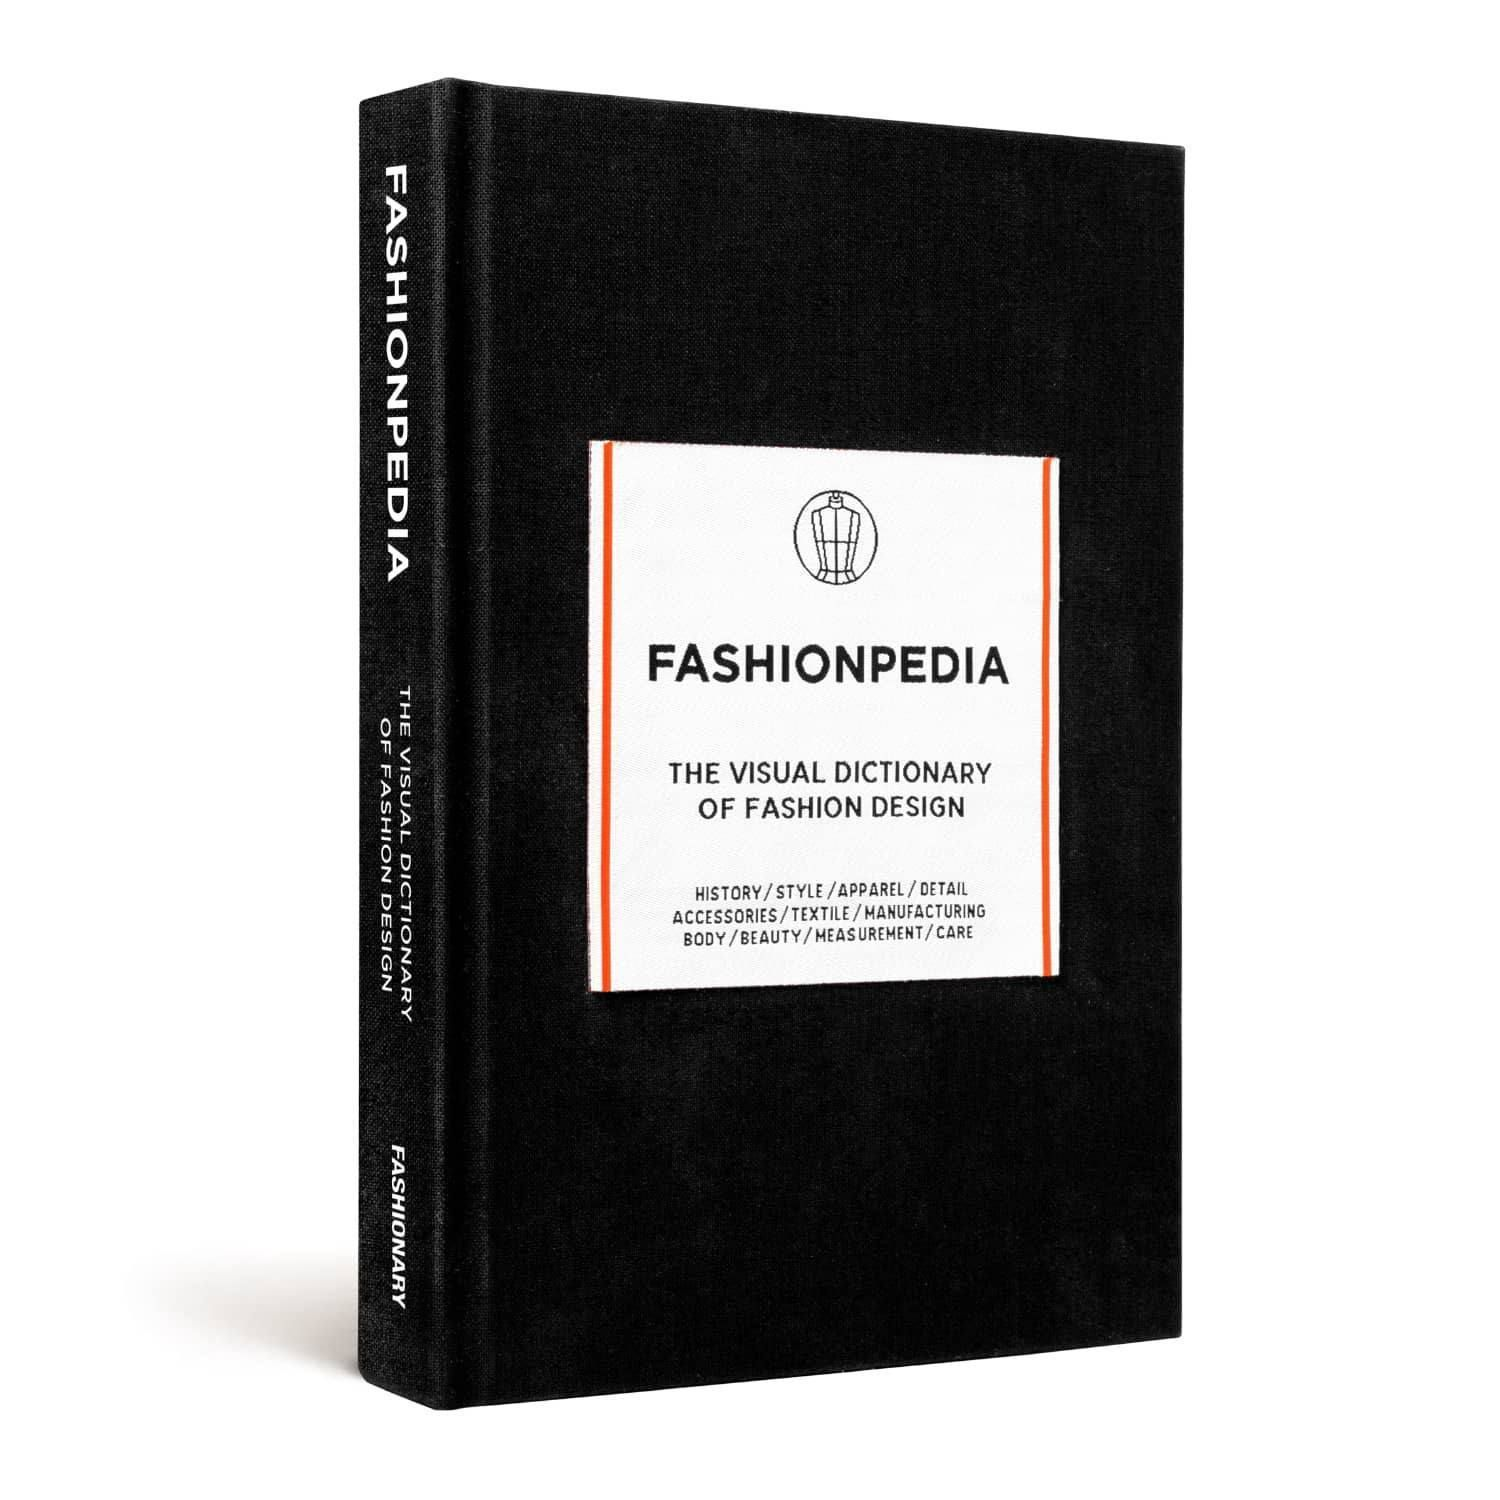 0e93cd7309 Fashion    A visual fashion dictionary with extensive information and  easy-to-read layout in a compact size. Mini